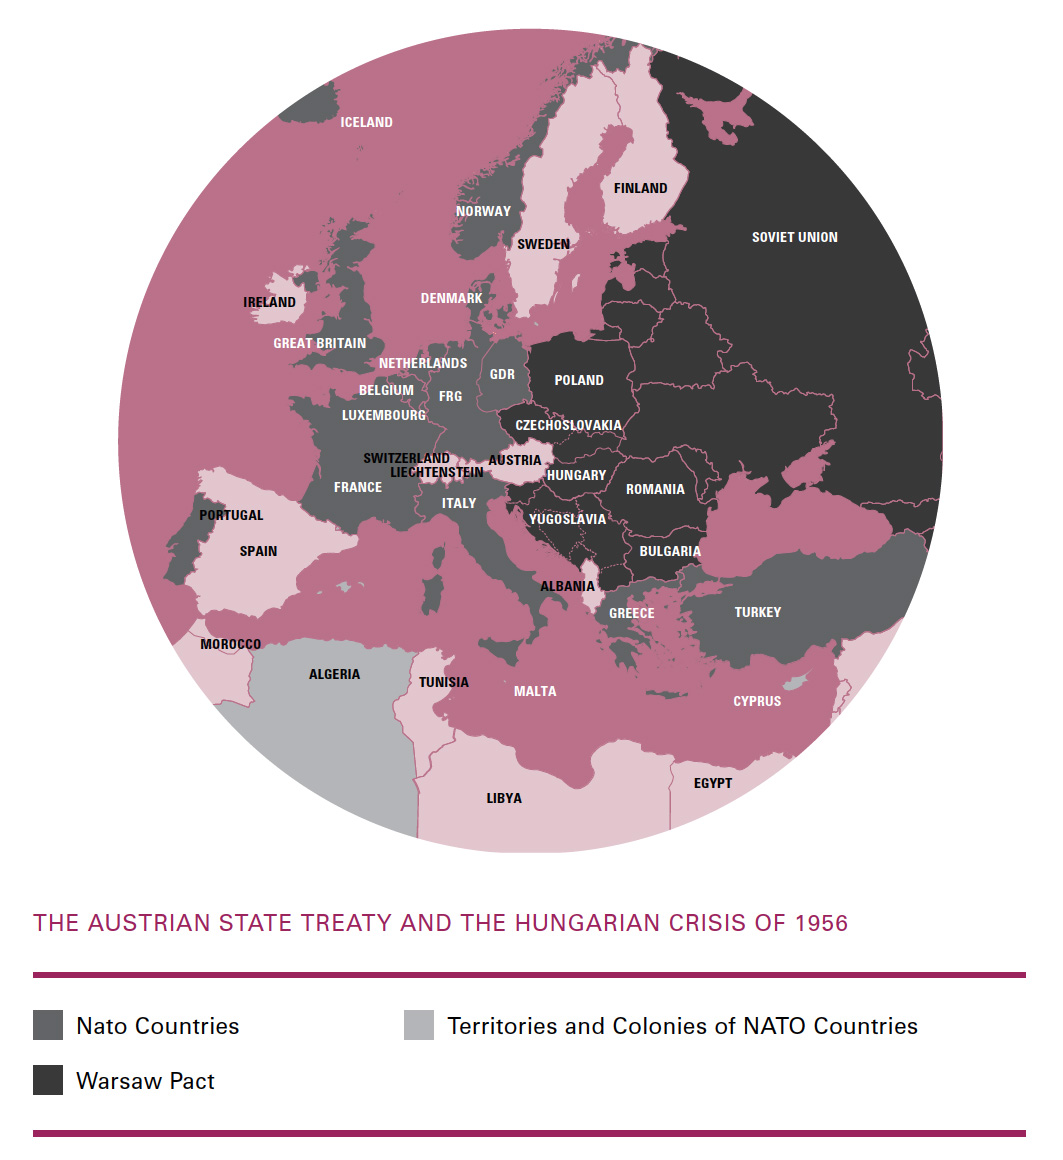 THE AUSTRIAN STATE TREATY AND THE HUNGARIAN CRISIS OF 1956